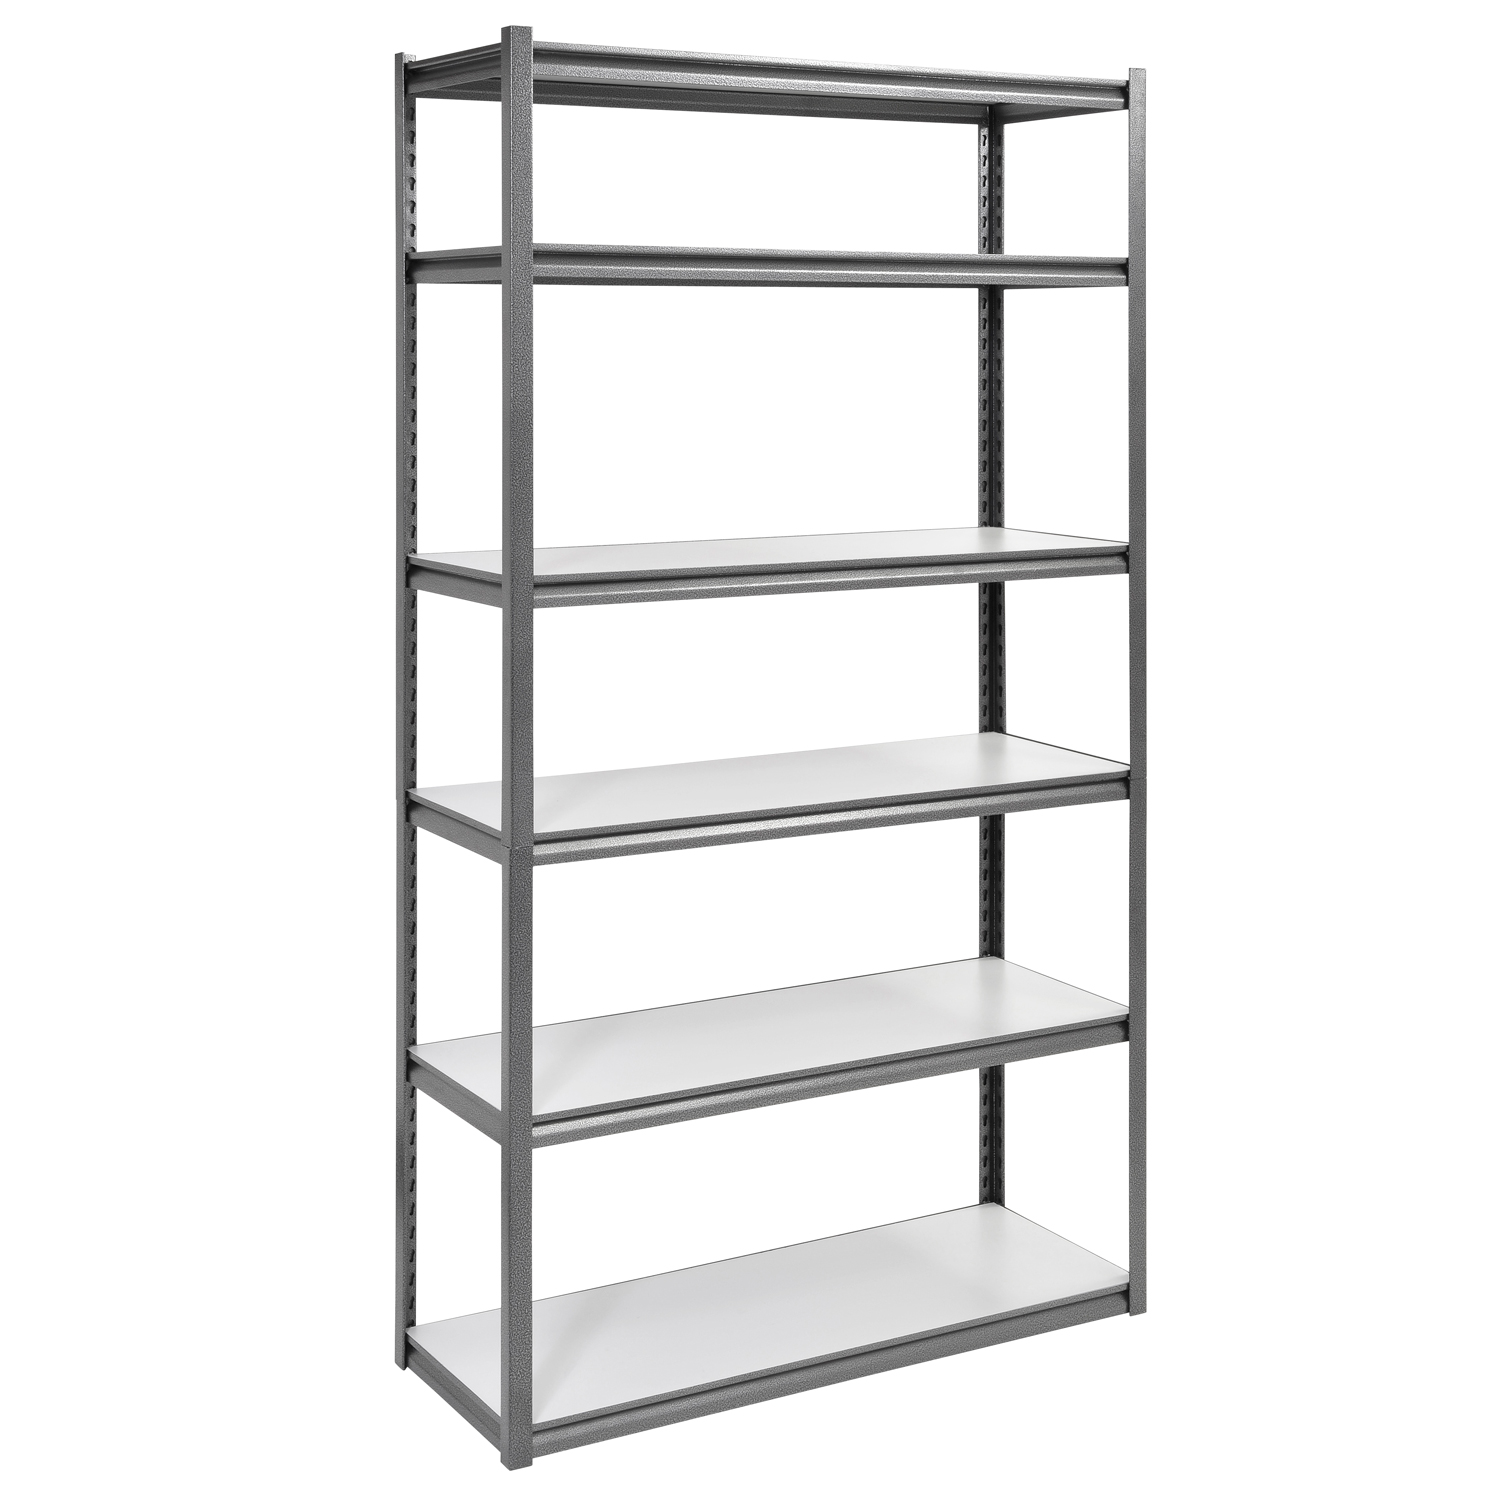 "6-Shelf 48""W x 84""H x 18""D Steel Storage Shelving Unit, Silver Vein"